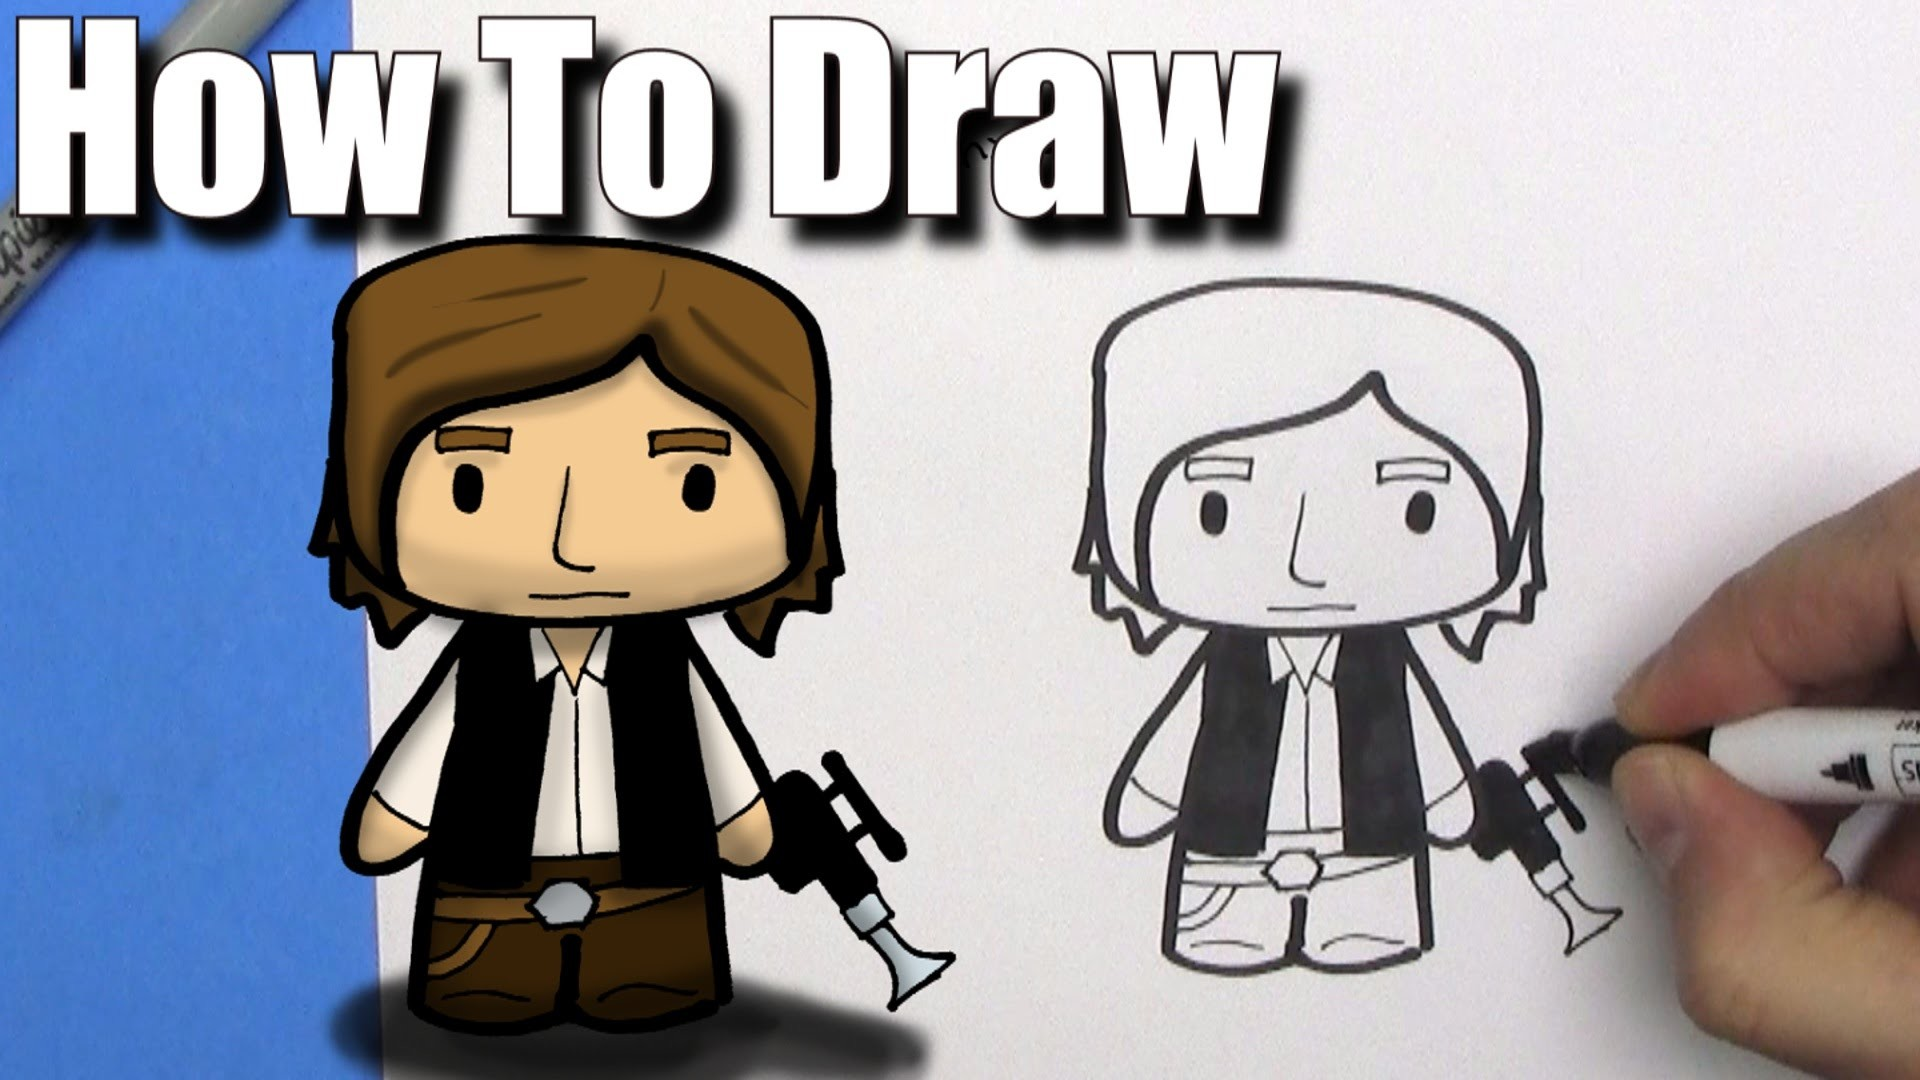 How To Draw a Cute Cartoon Han Solo – EASY Chibi – Step By Step – Kawaii –  YouTube